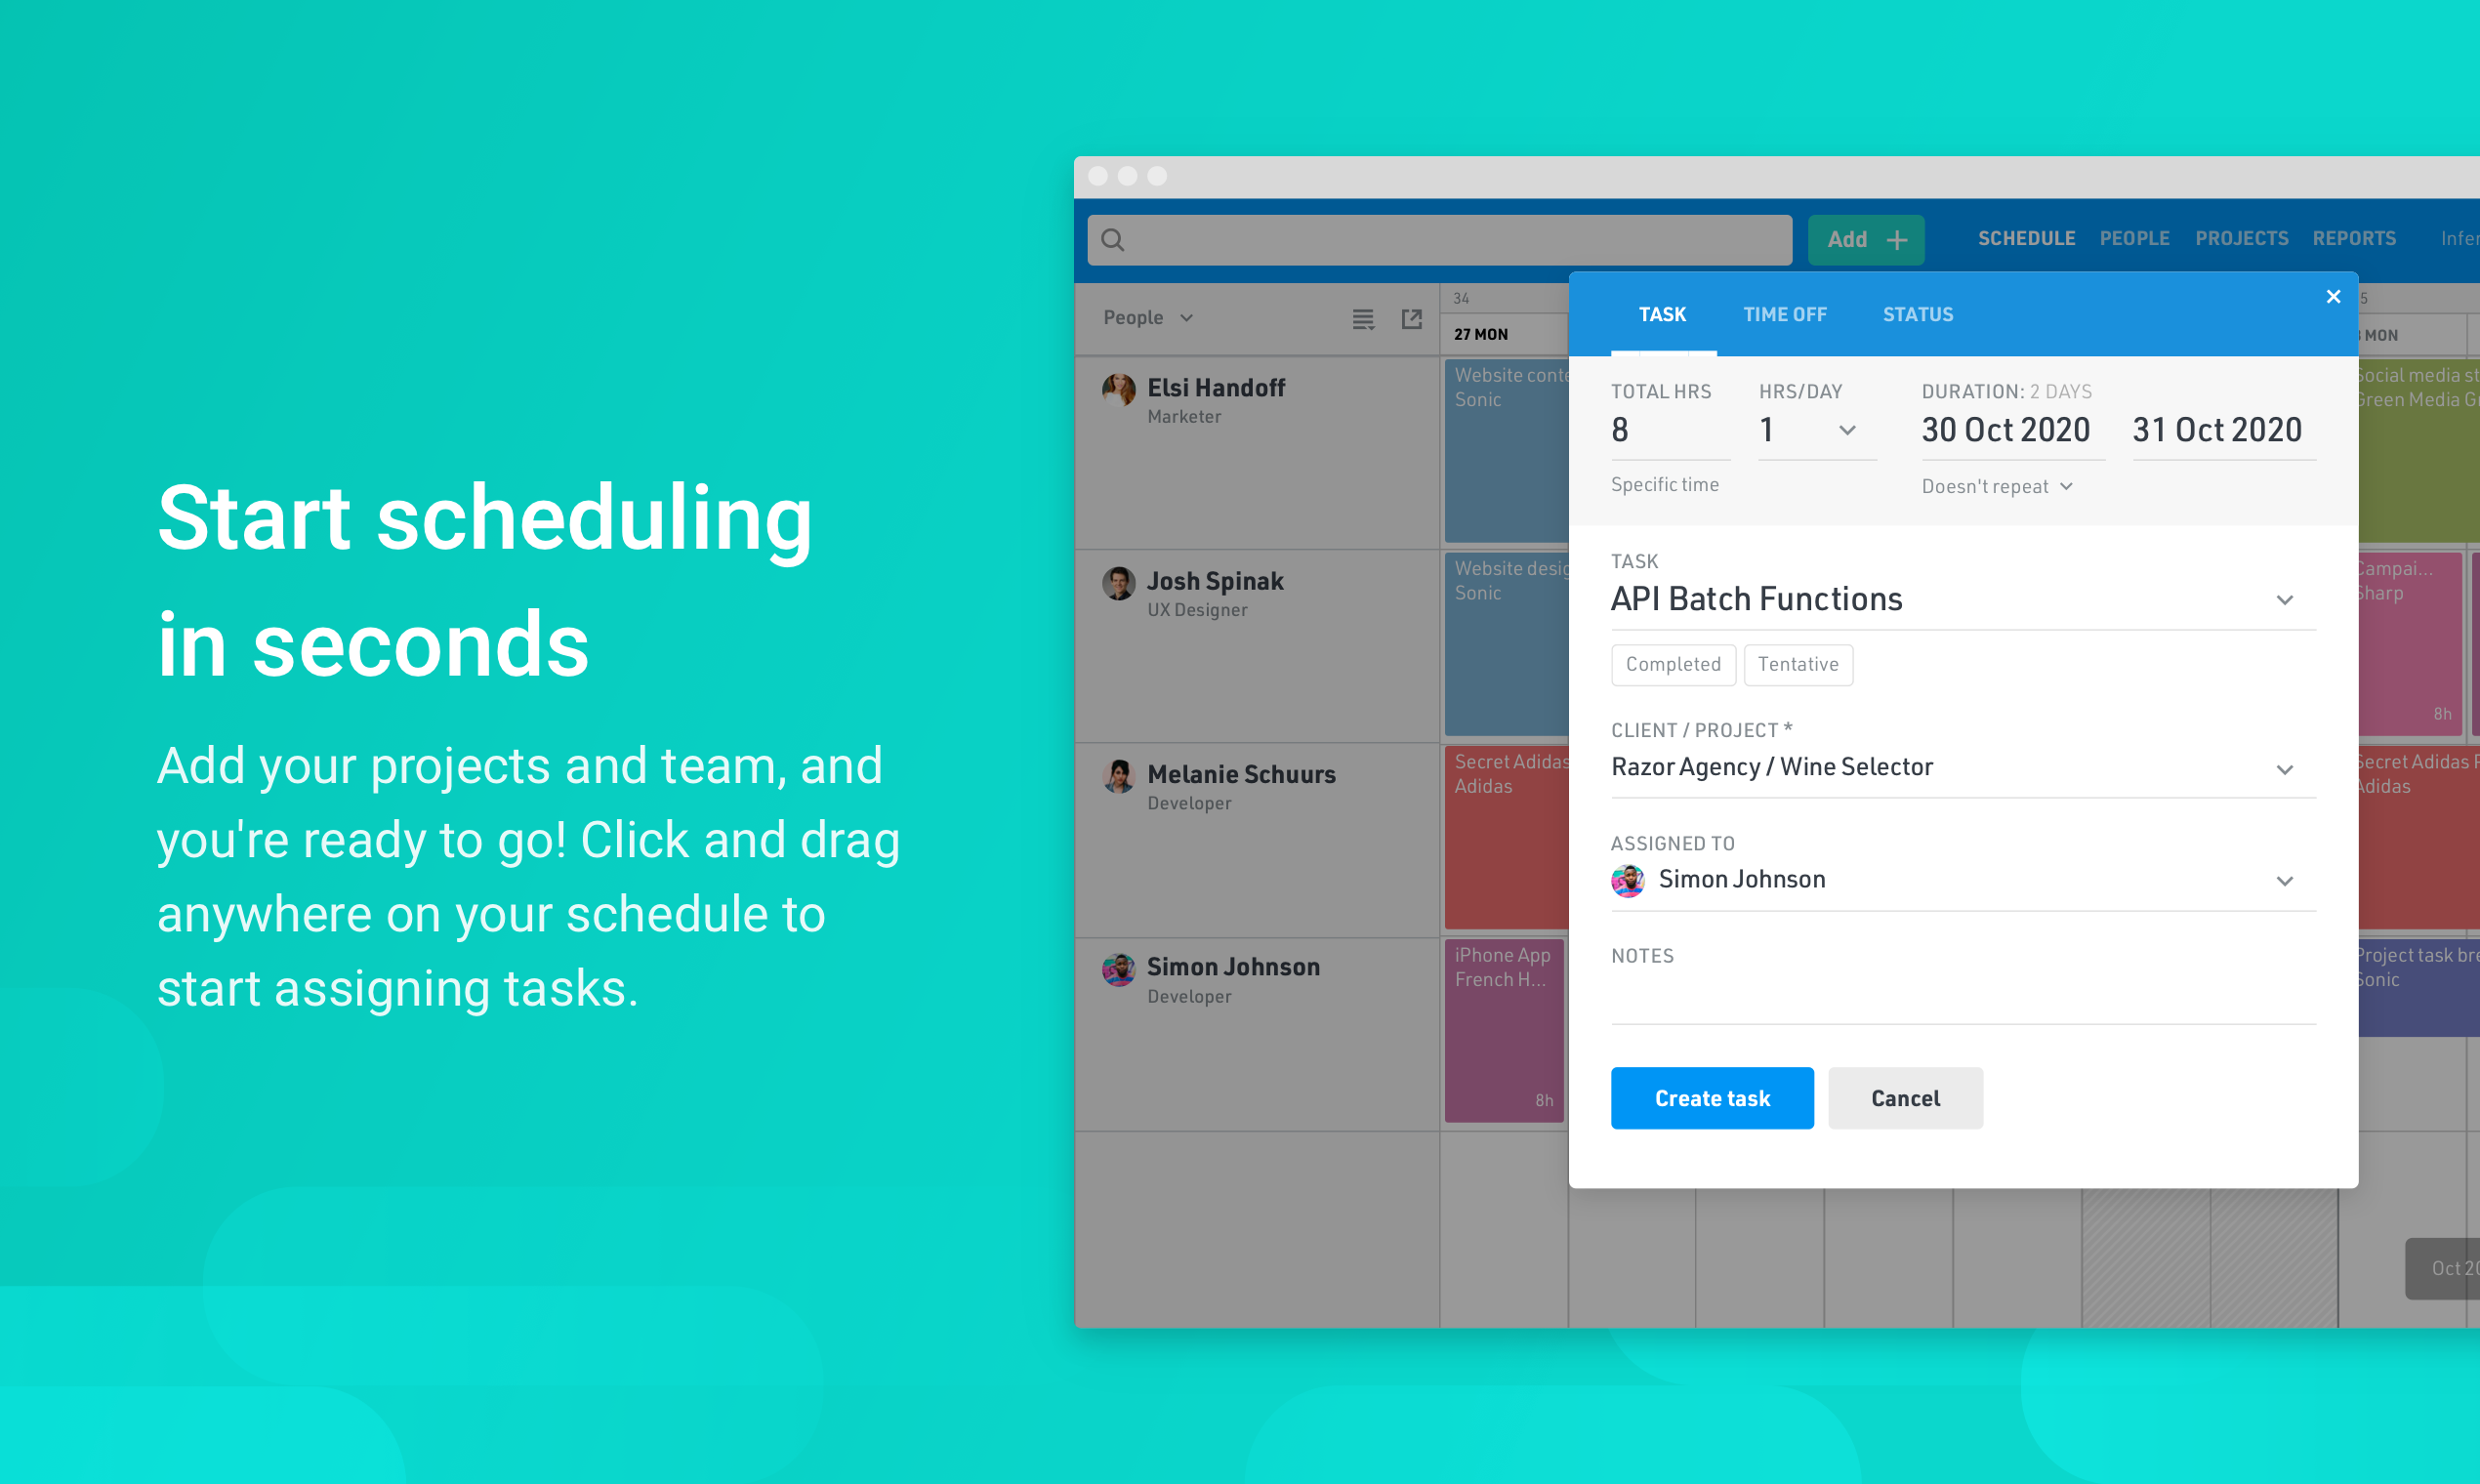 Start assigning tasks in seconds by clicking anywhere on your schedule. Make changes quickly with powerful editing tools and scenario plan by assigning tentative tasks on your schedule.